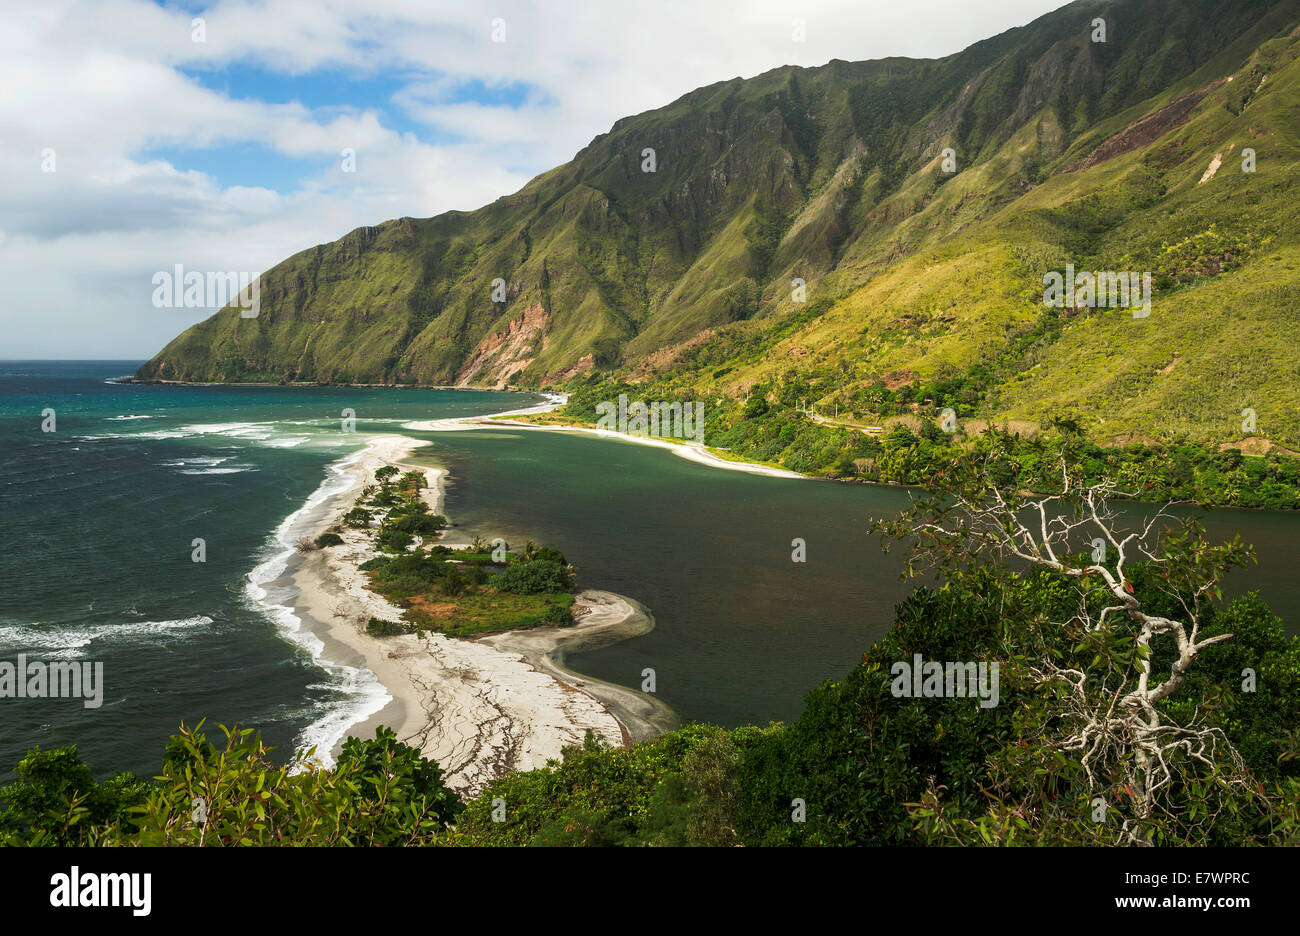 Countryside with a beach on the coast, Grande Terre, New Caledonia - Stock Image